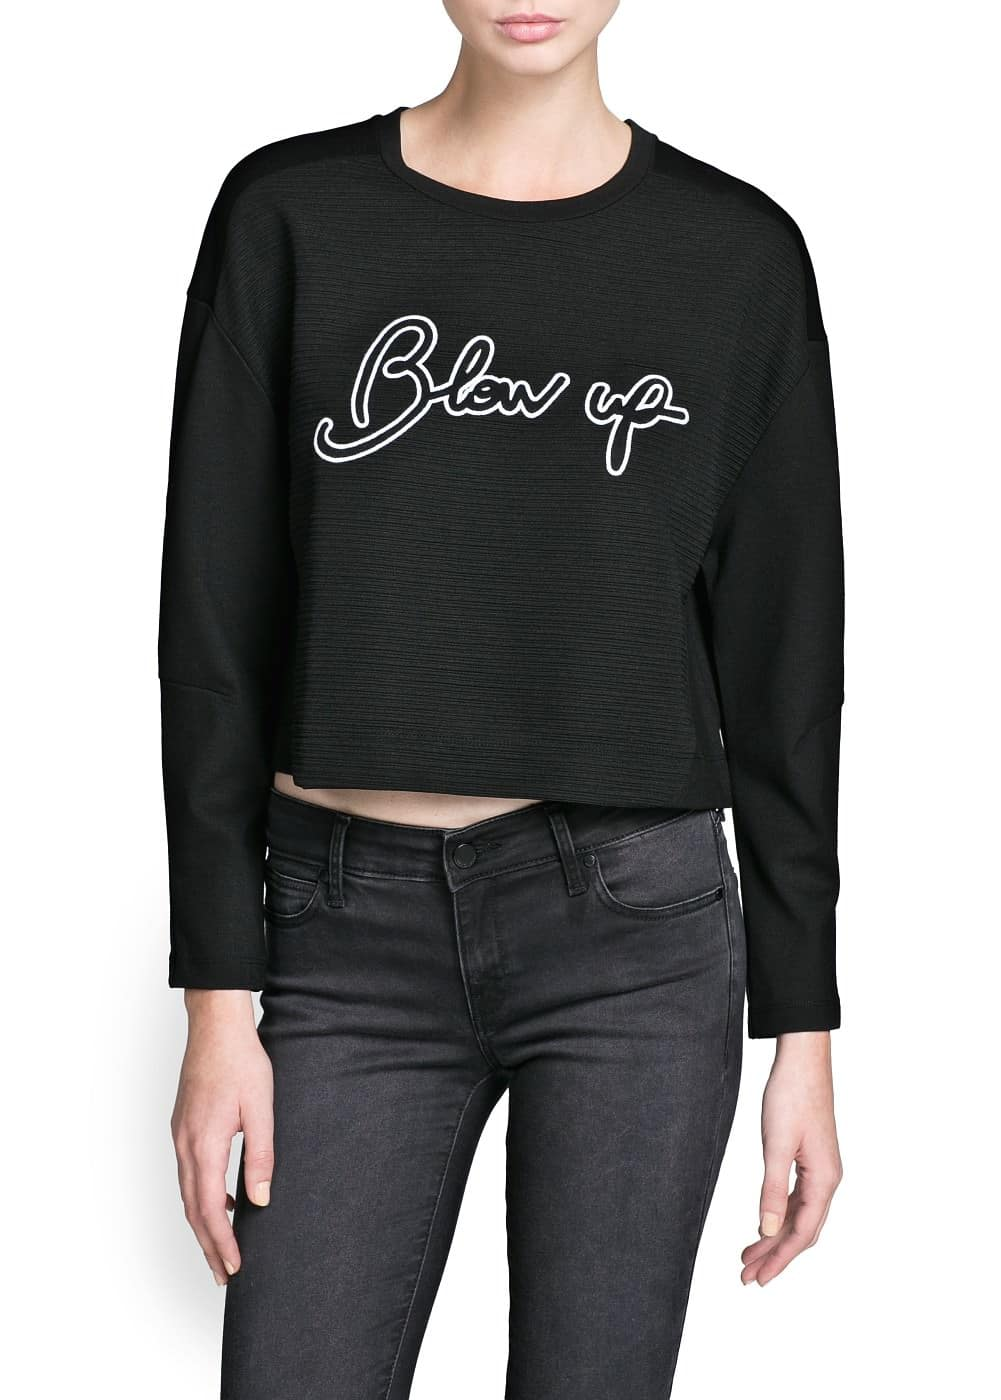 Blow up cropped sweatshirt